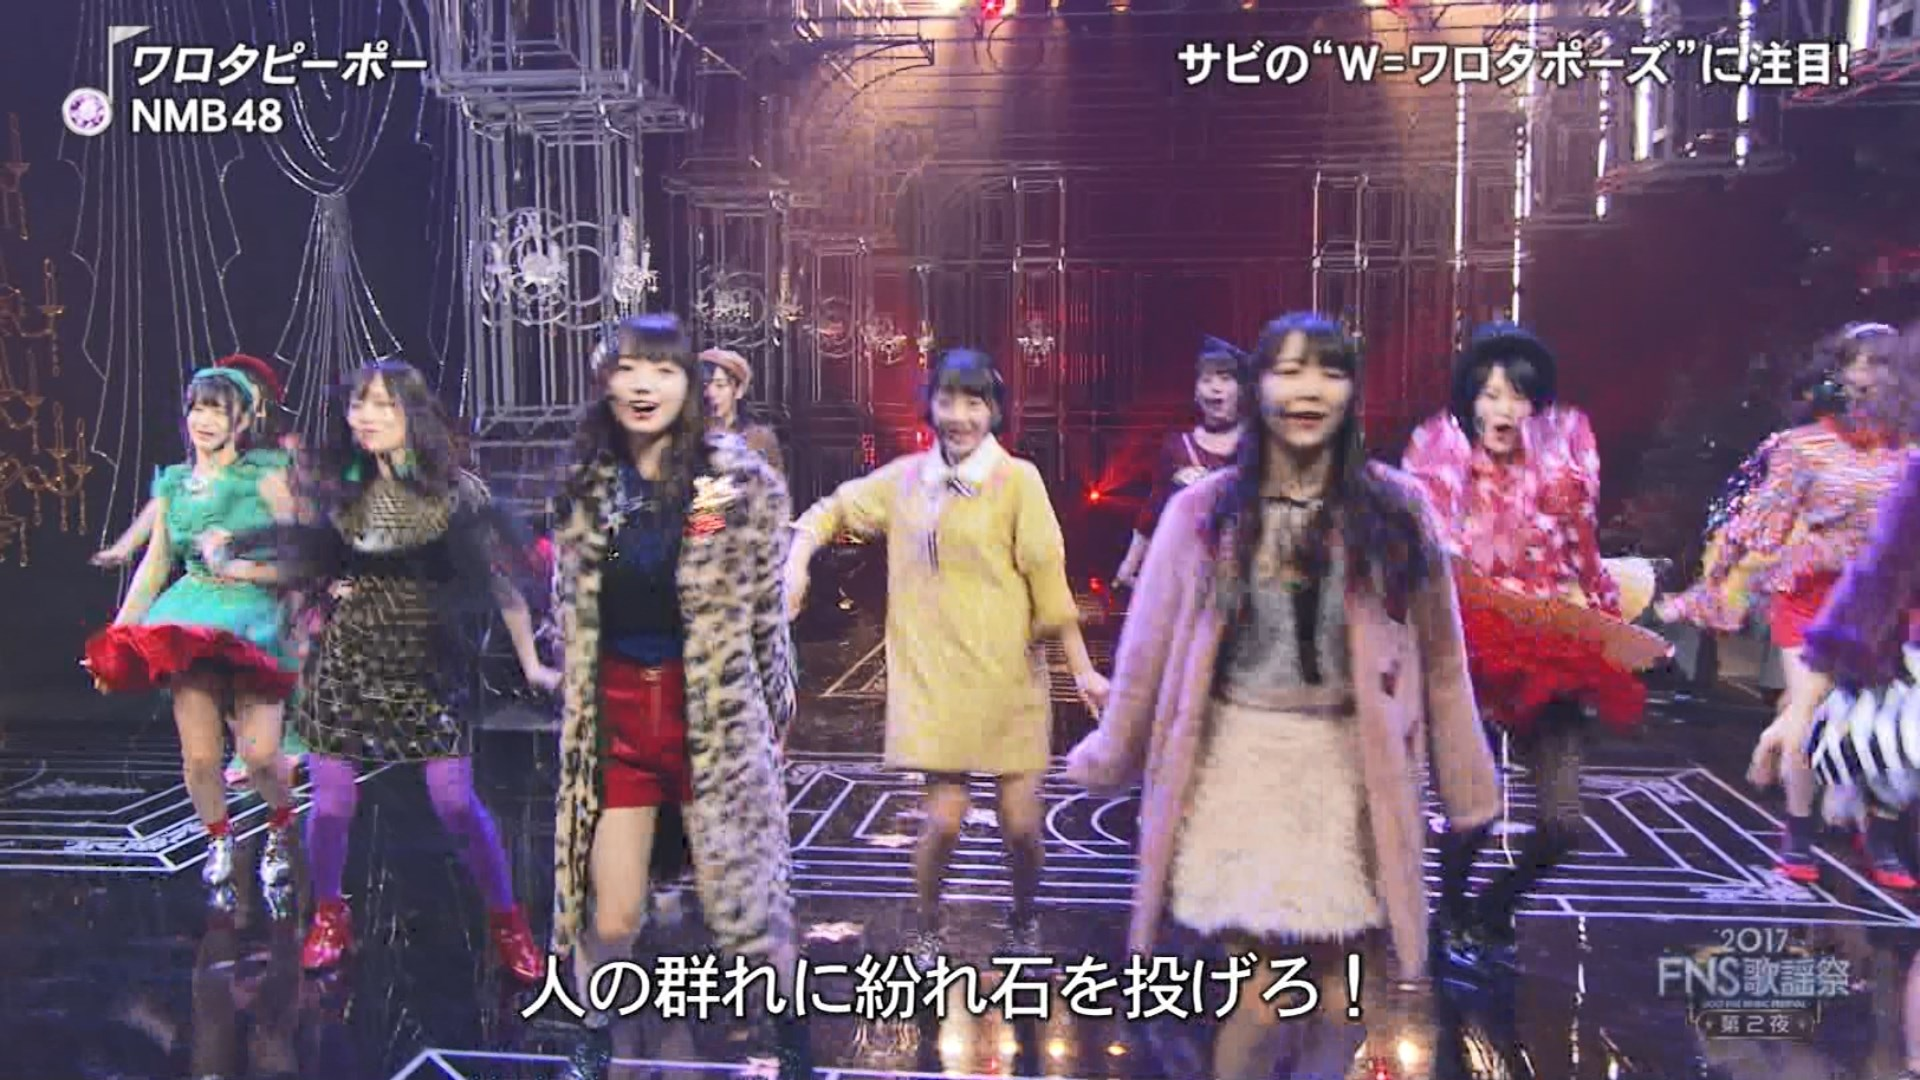 2017FNS歌謡祭第2夜・NMB48ワロタピーポーキャプ-065